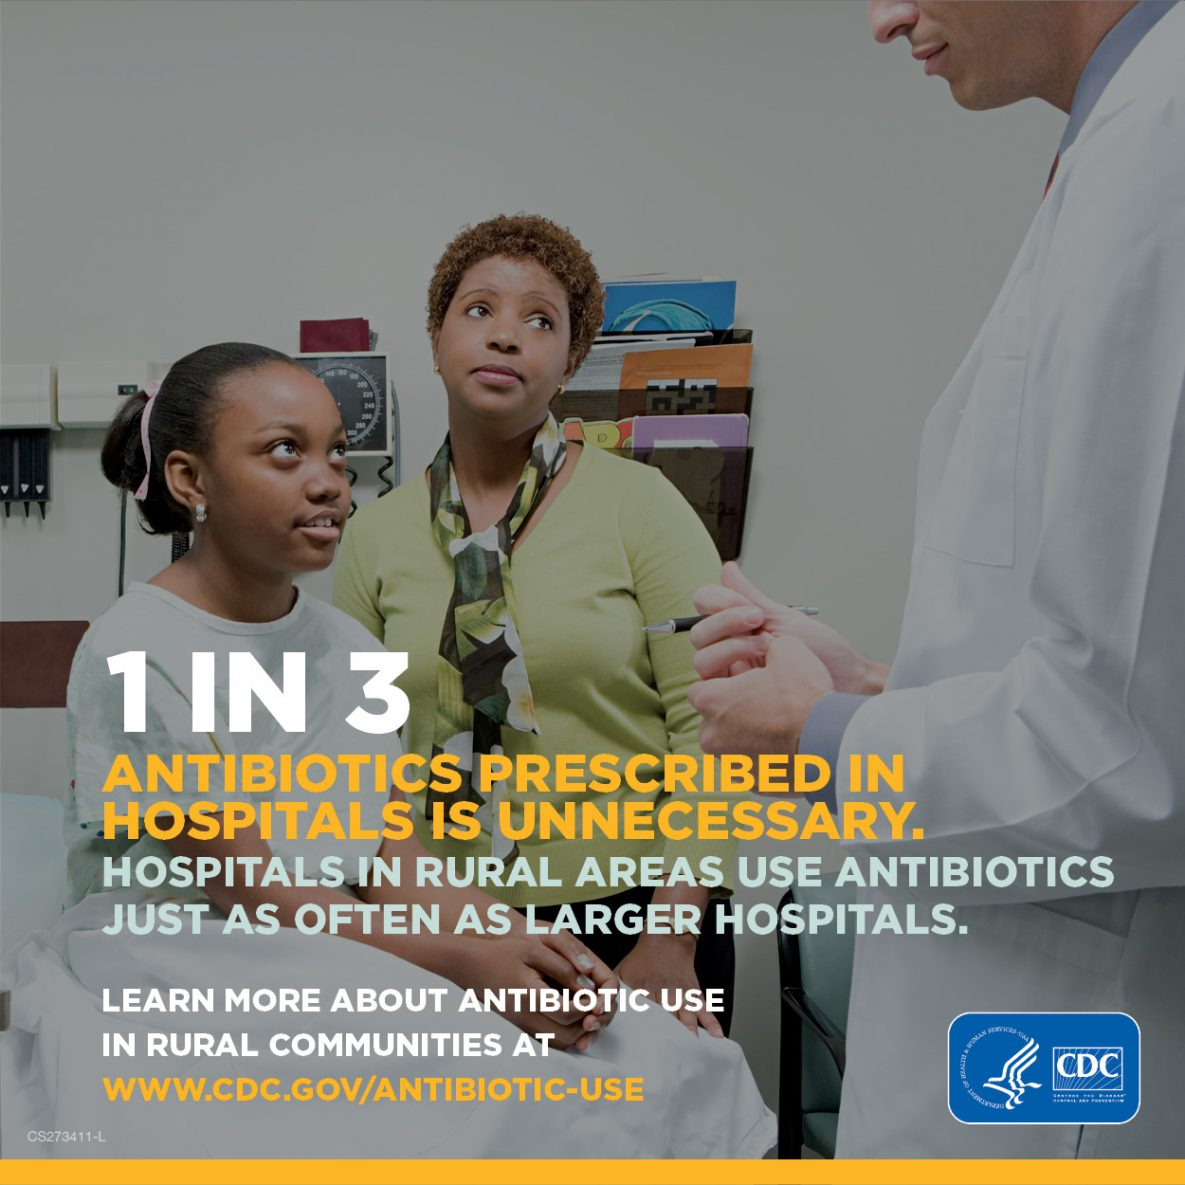 1 in 3 Antibiotics precribed in hospitals is unnecessary. Hospitals in rural areas use antibiotics just as often as larger hospitals.